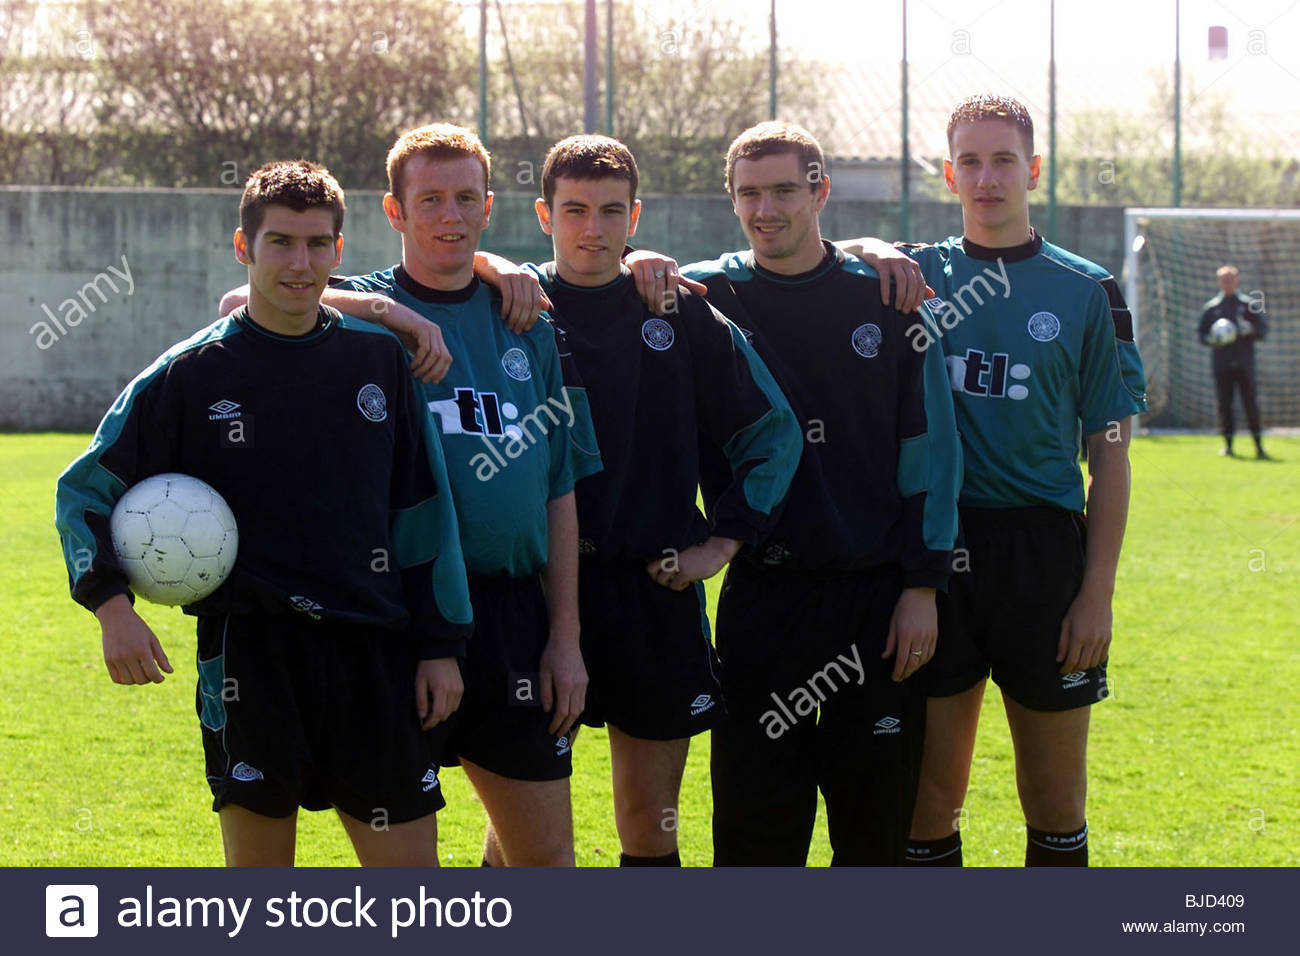 05/05/00 Celtic's (from left) Mark Burchill, Stephen Crainey, Simon Lynch, Colin Healy and John Kennedy at training - Stock Image